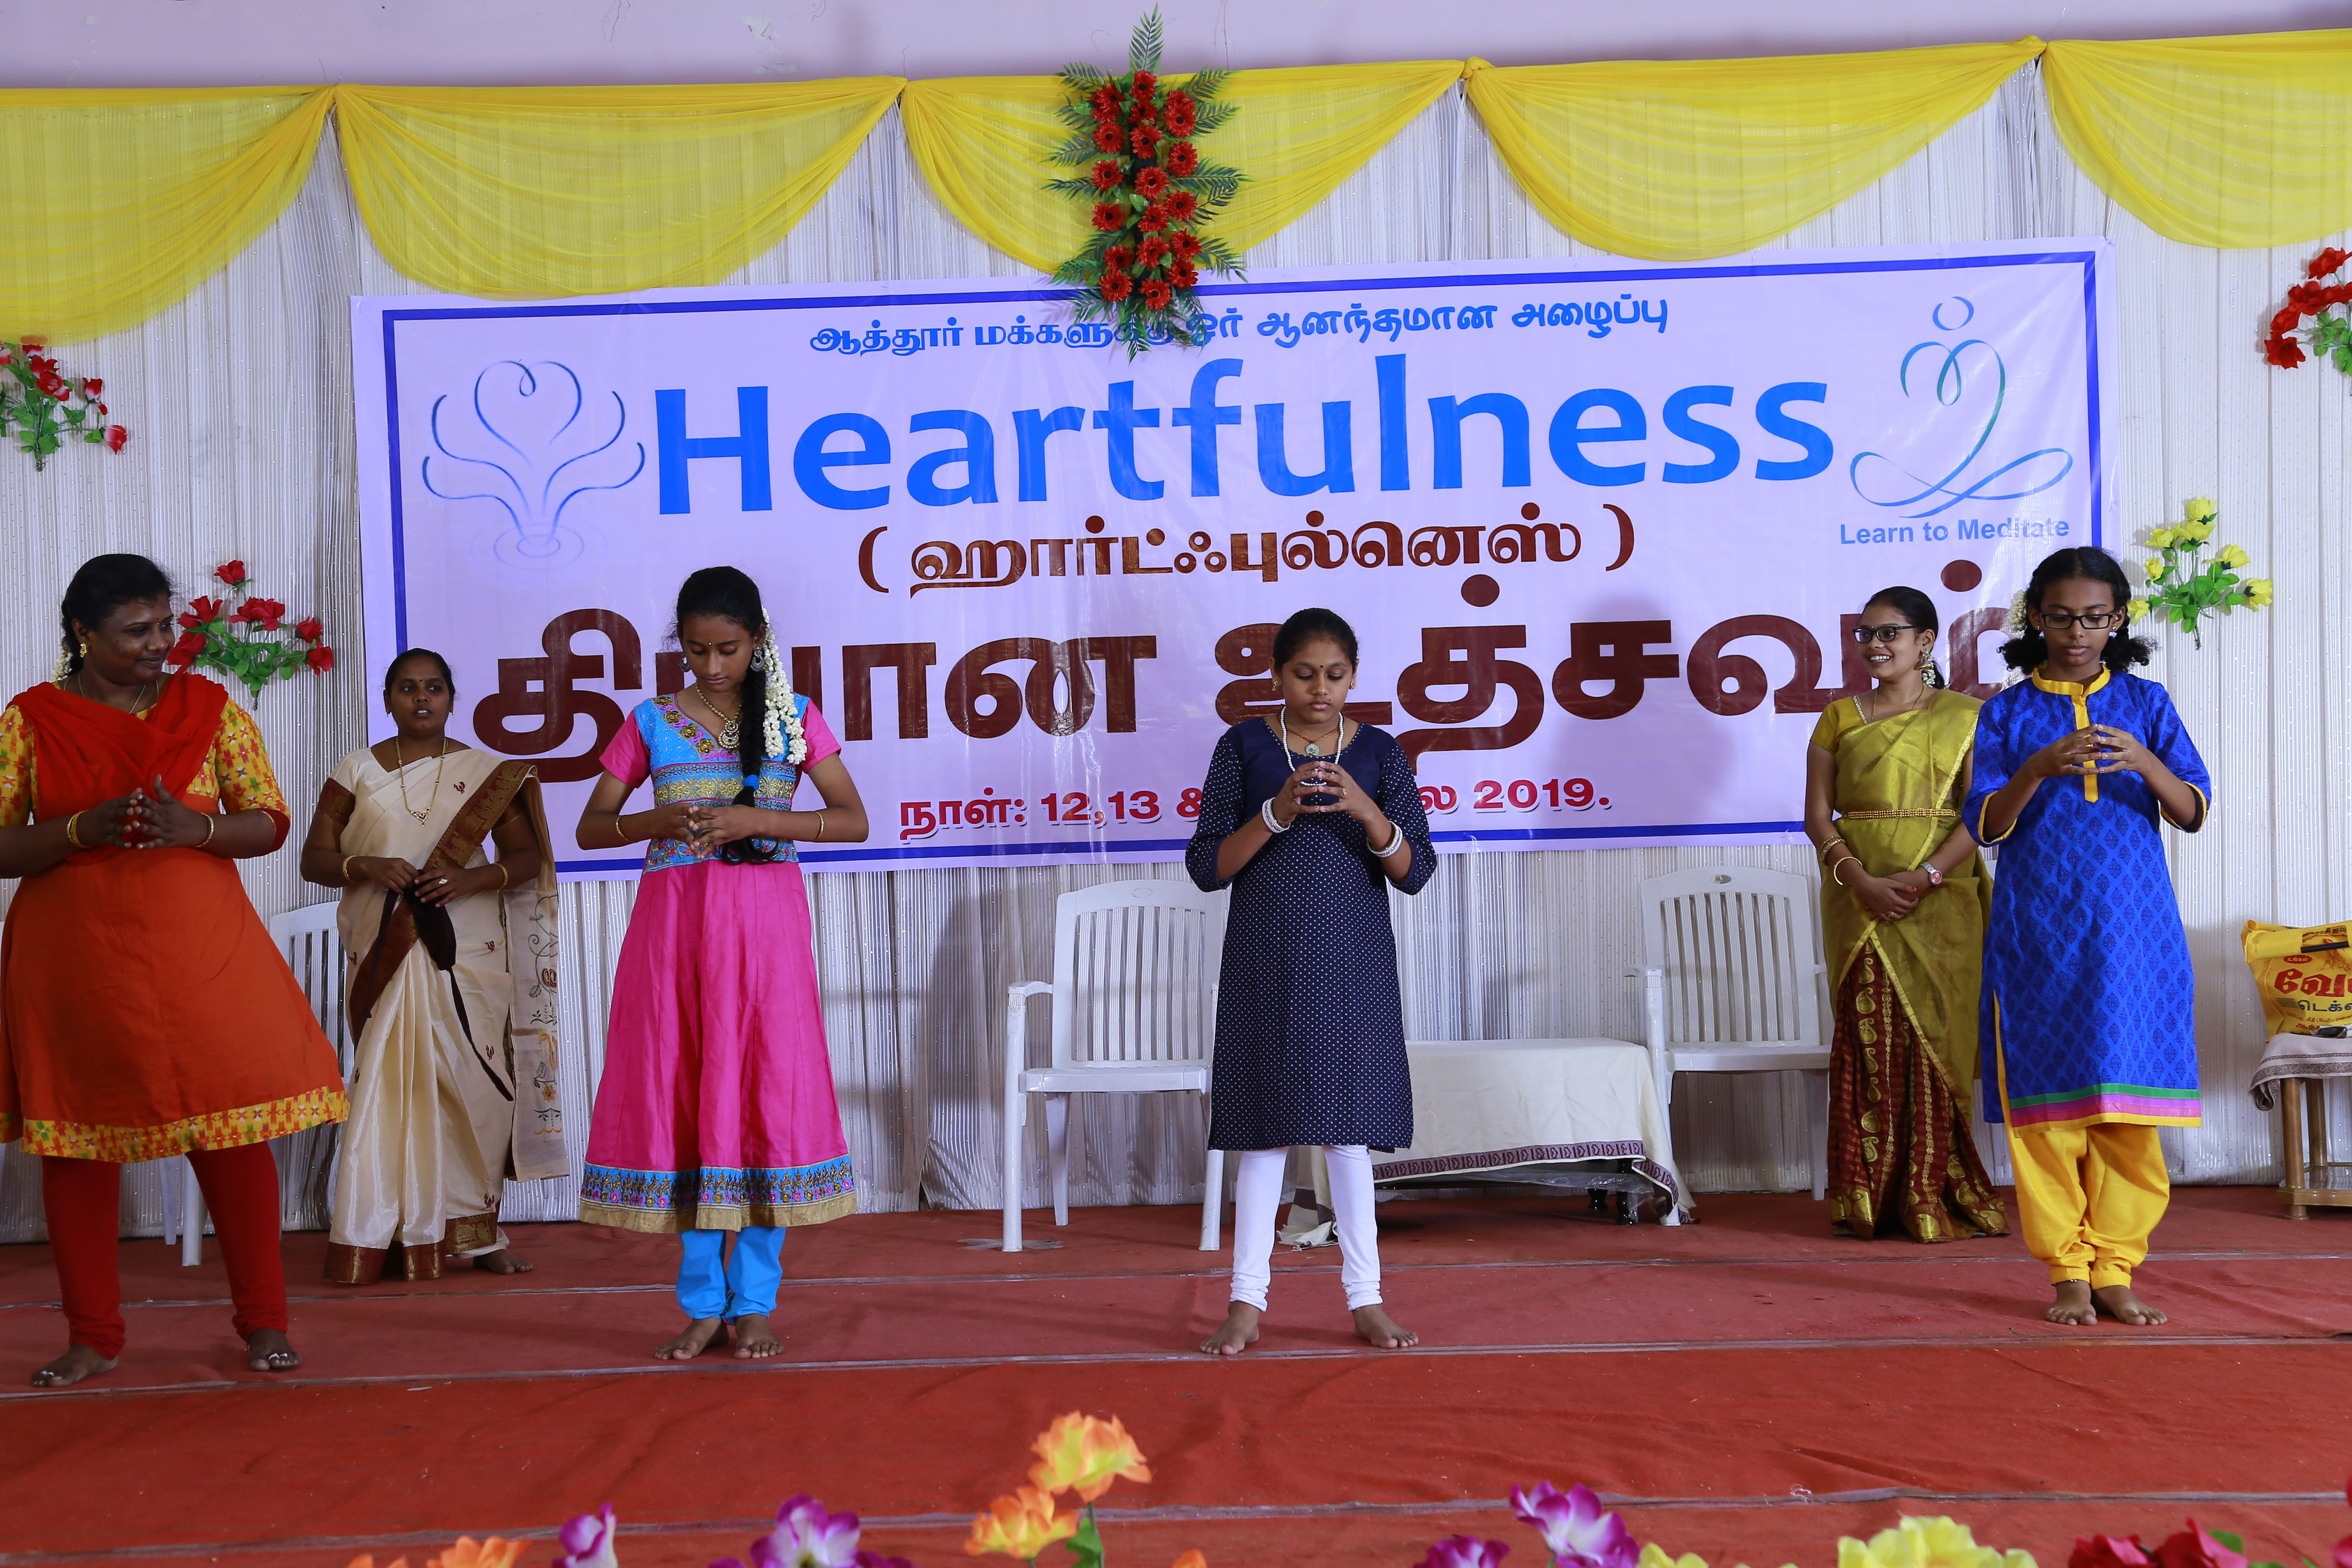 heartfulness dhyanotsav at attur